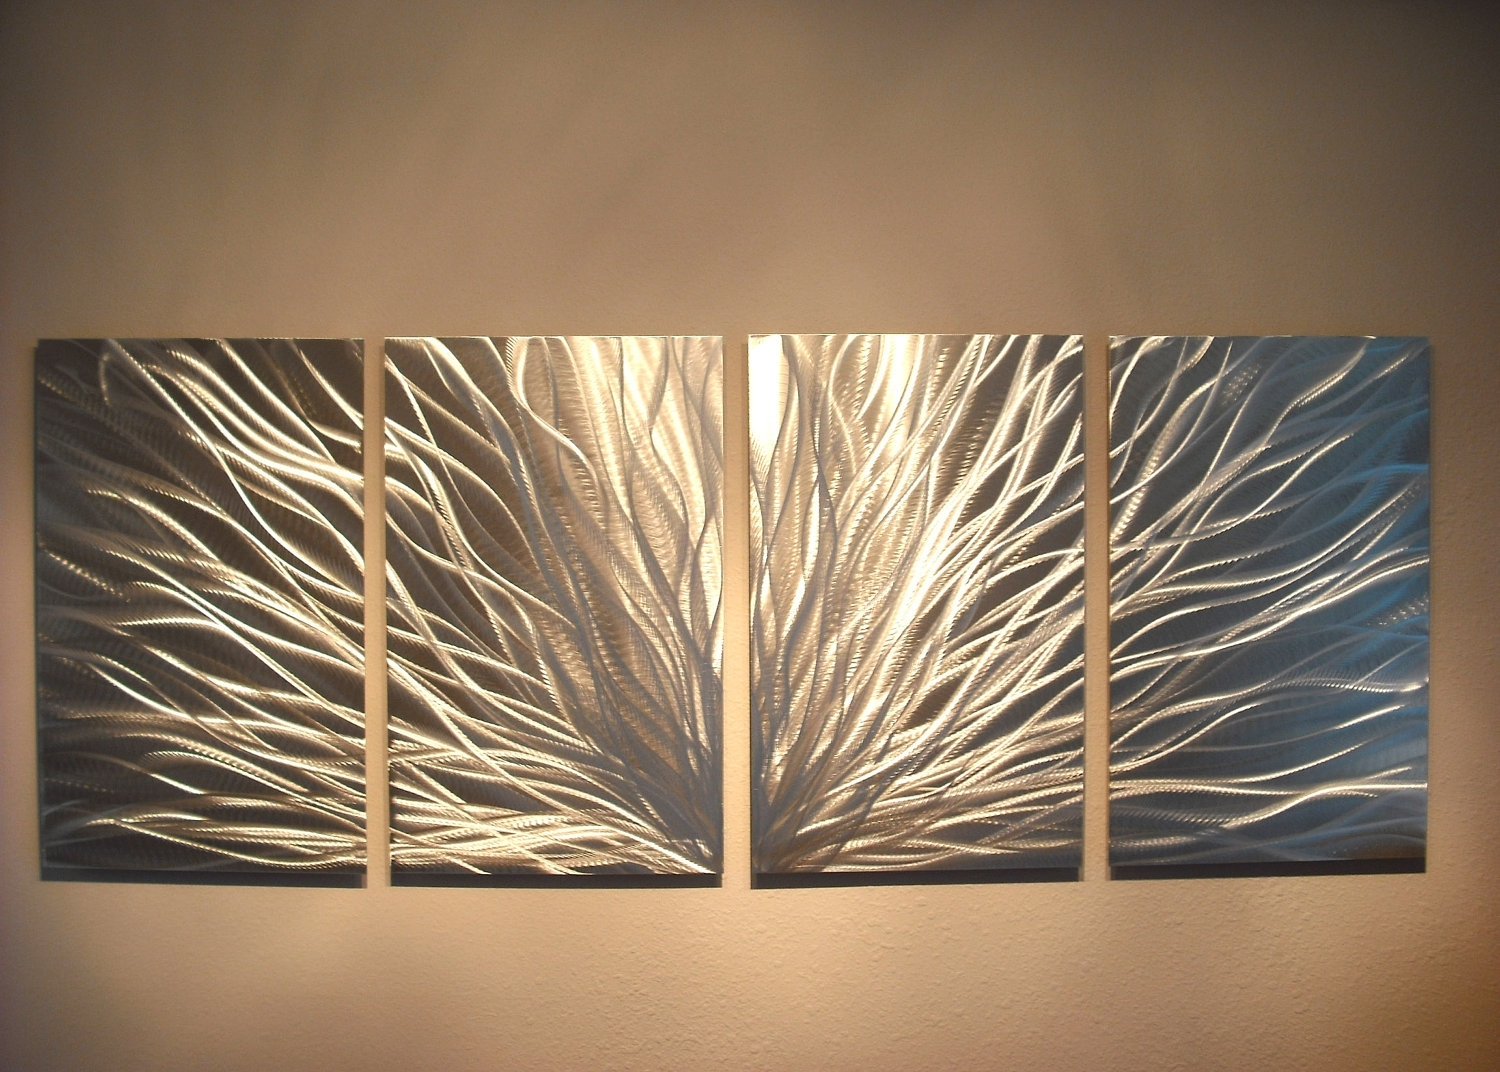 Radiance – Abstract Metal Wall Art Contemporary Modern Decor Inside Most Popular Abstract Art Wall Hangings (View 16 of 20)